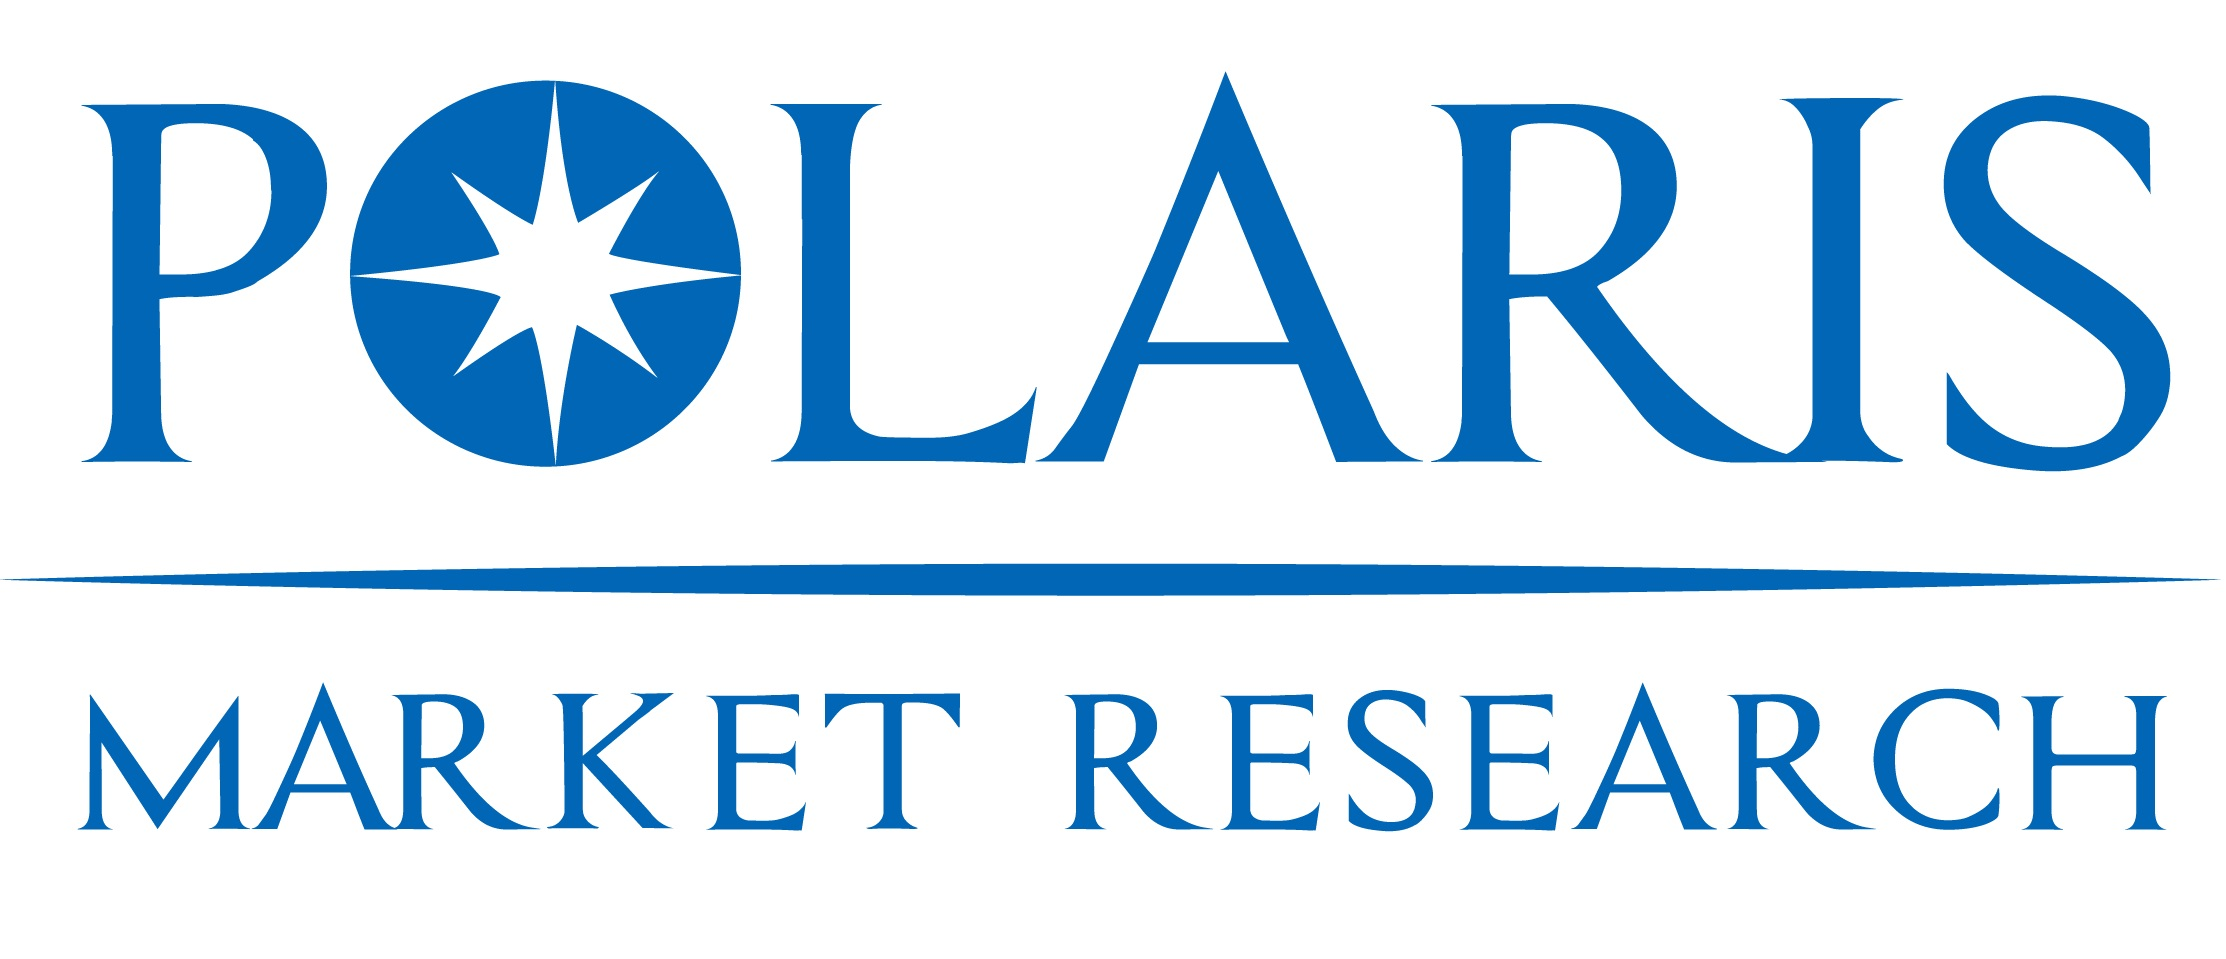 Capnography Devices Market Size Is Projected To Reach $1.06 Billion By 2028 | CAGR: 9.9% : Polaris Market Research